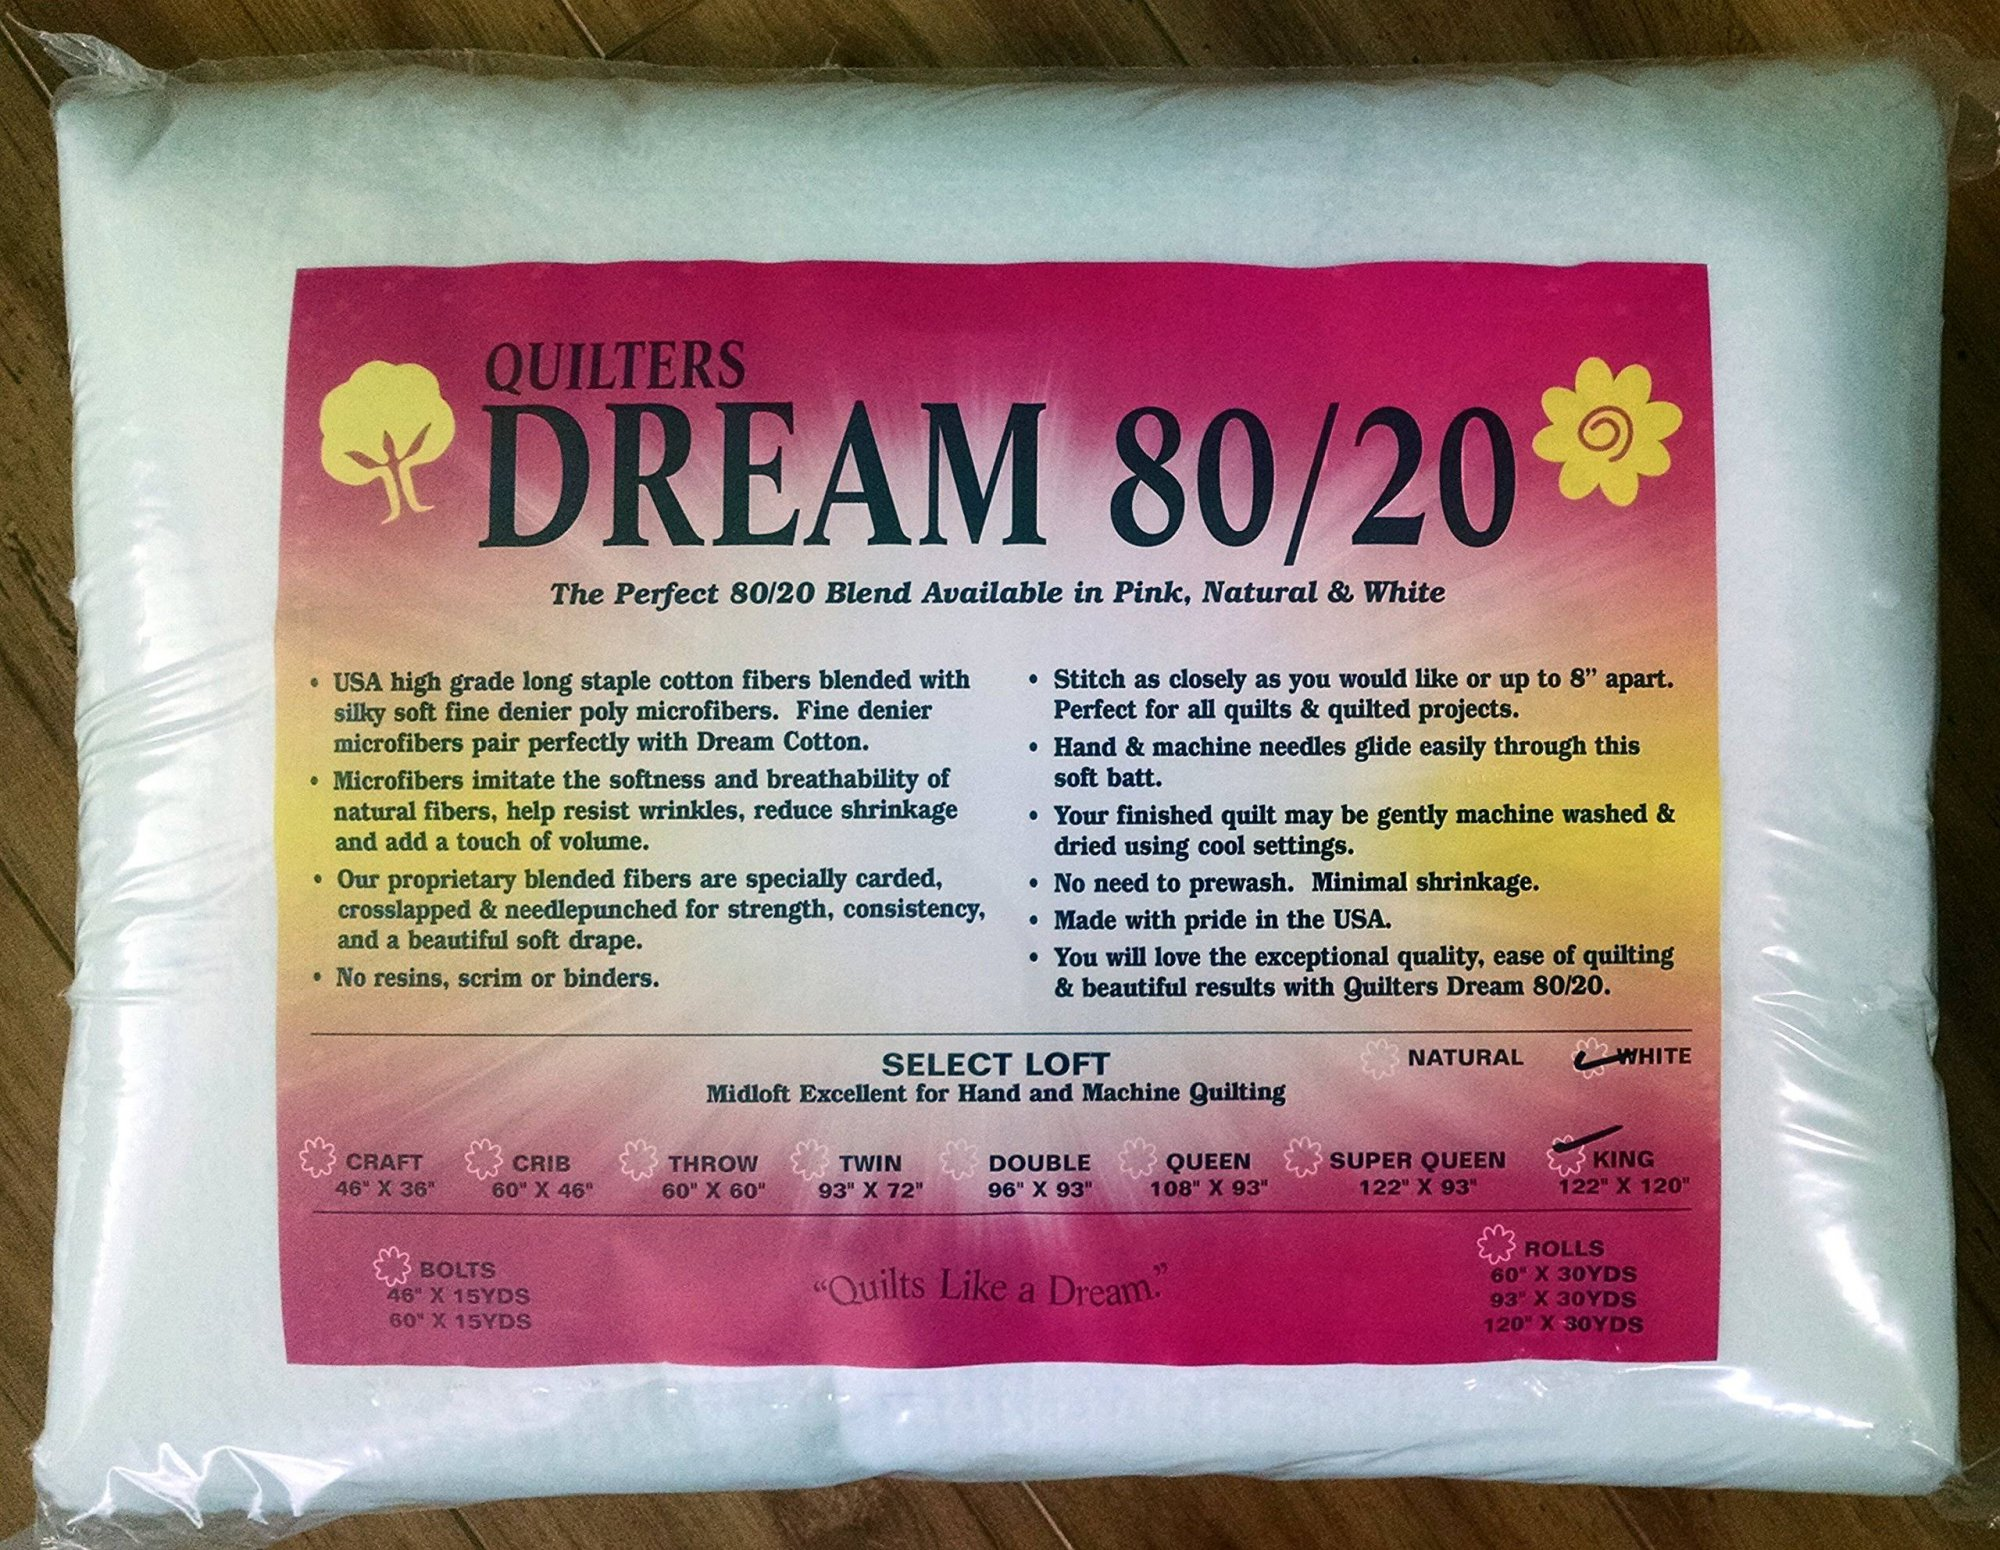 Quilters dream 80/20- White- king 122x120